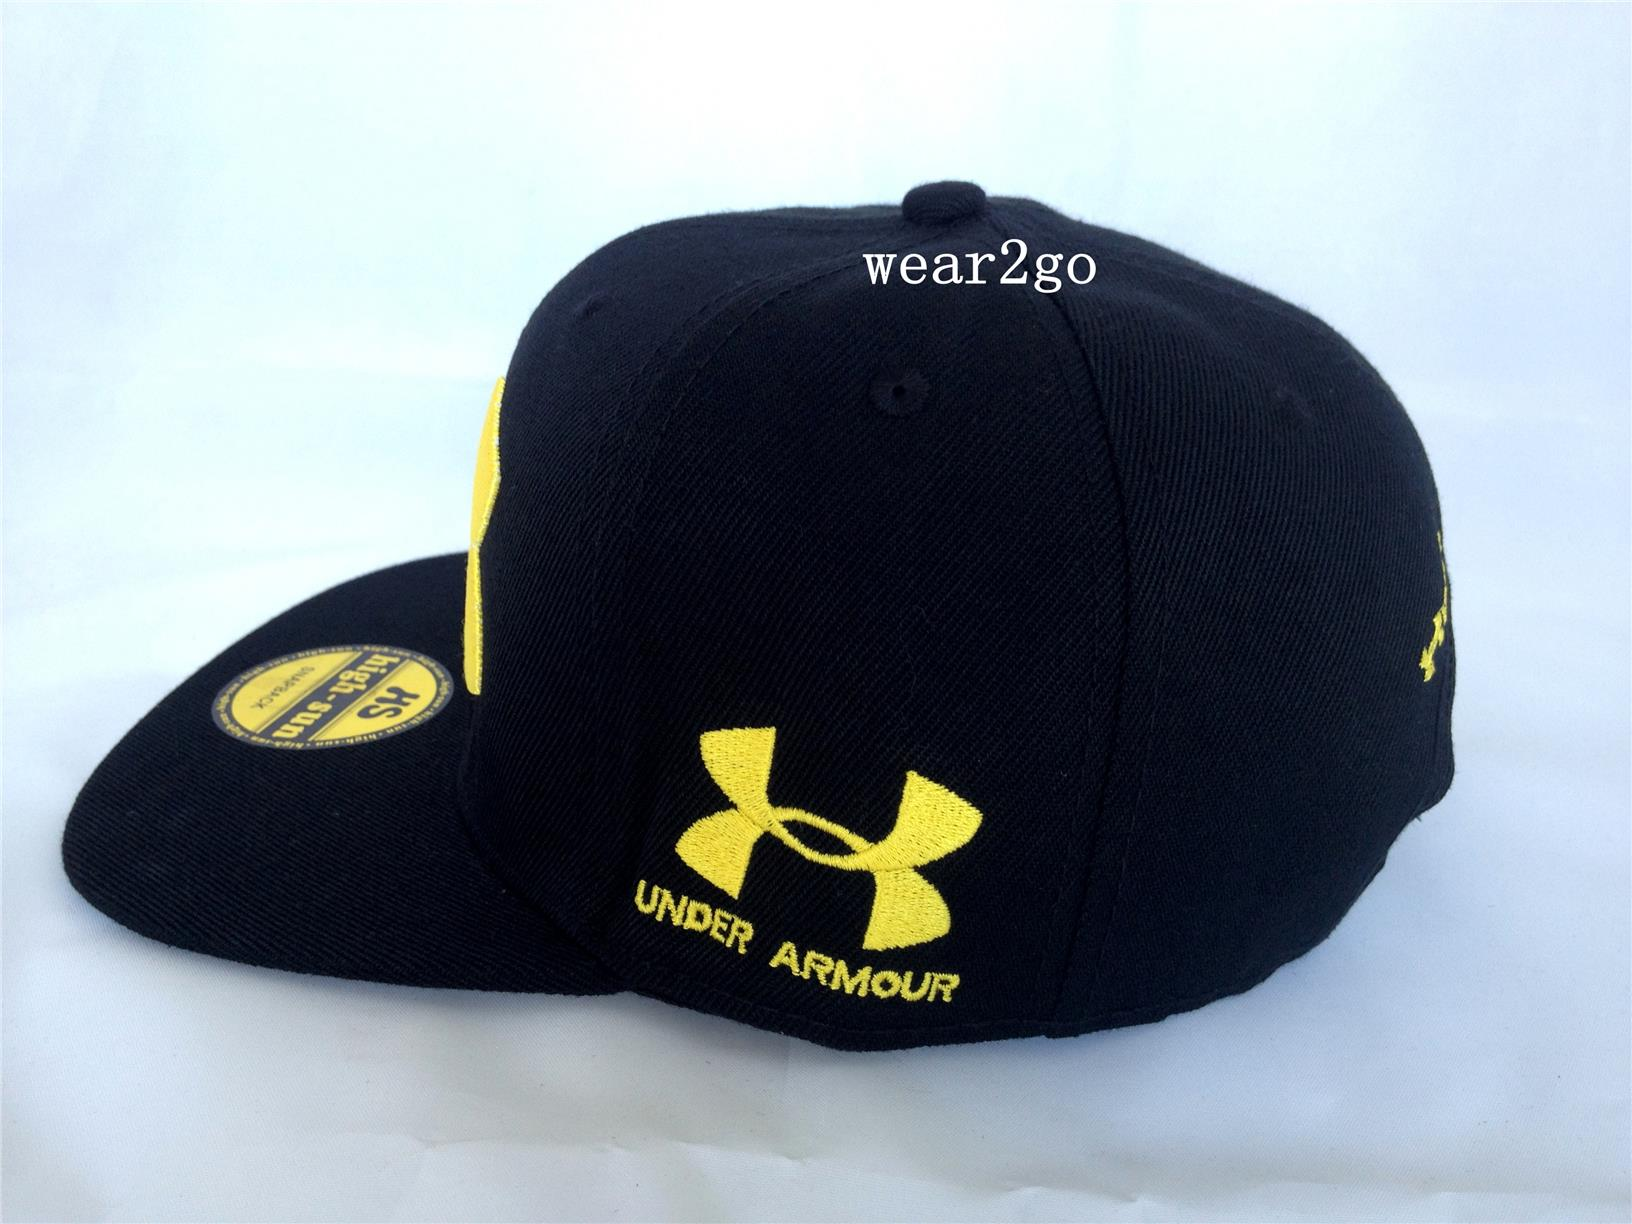 1b59e419085 UNDER ARMOUR (1) Snapback Cap in Bla (end 3 28 2018 2 15 PM)